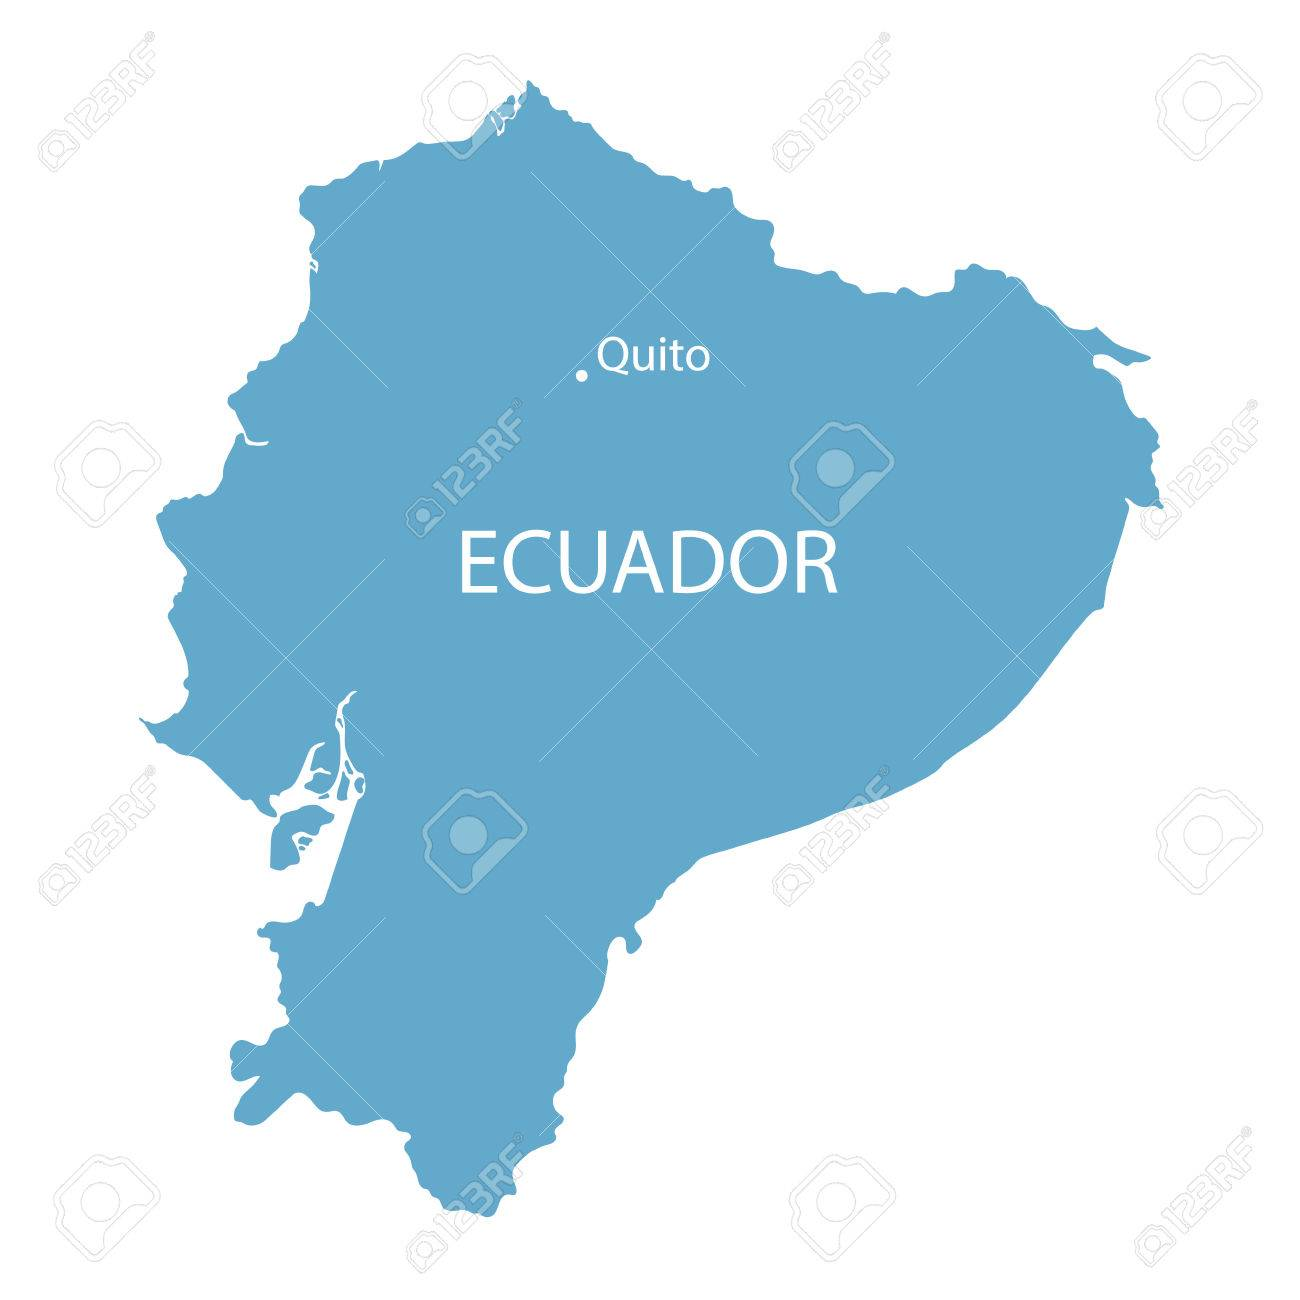 Blue map of ecuador with indication of quito royalty free cliparts blue map of ecuador with indication of quito stock vector 48119394 gumiabroncs Choice Image